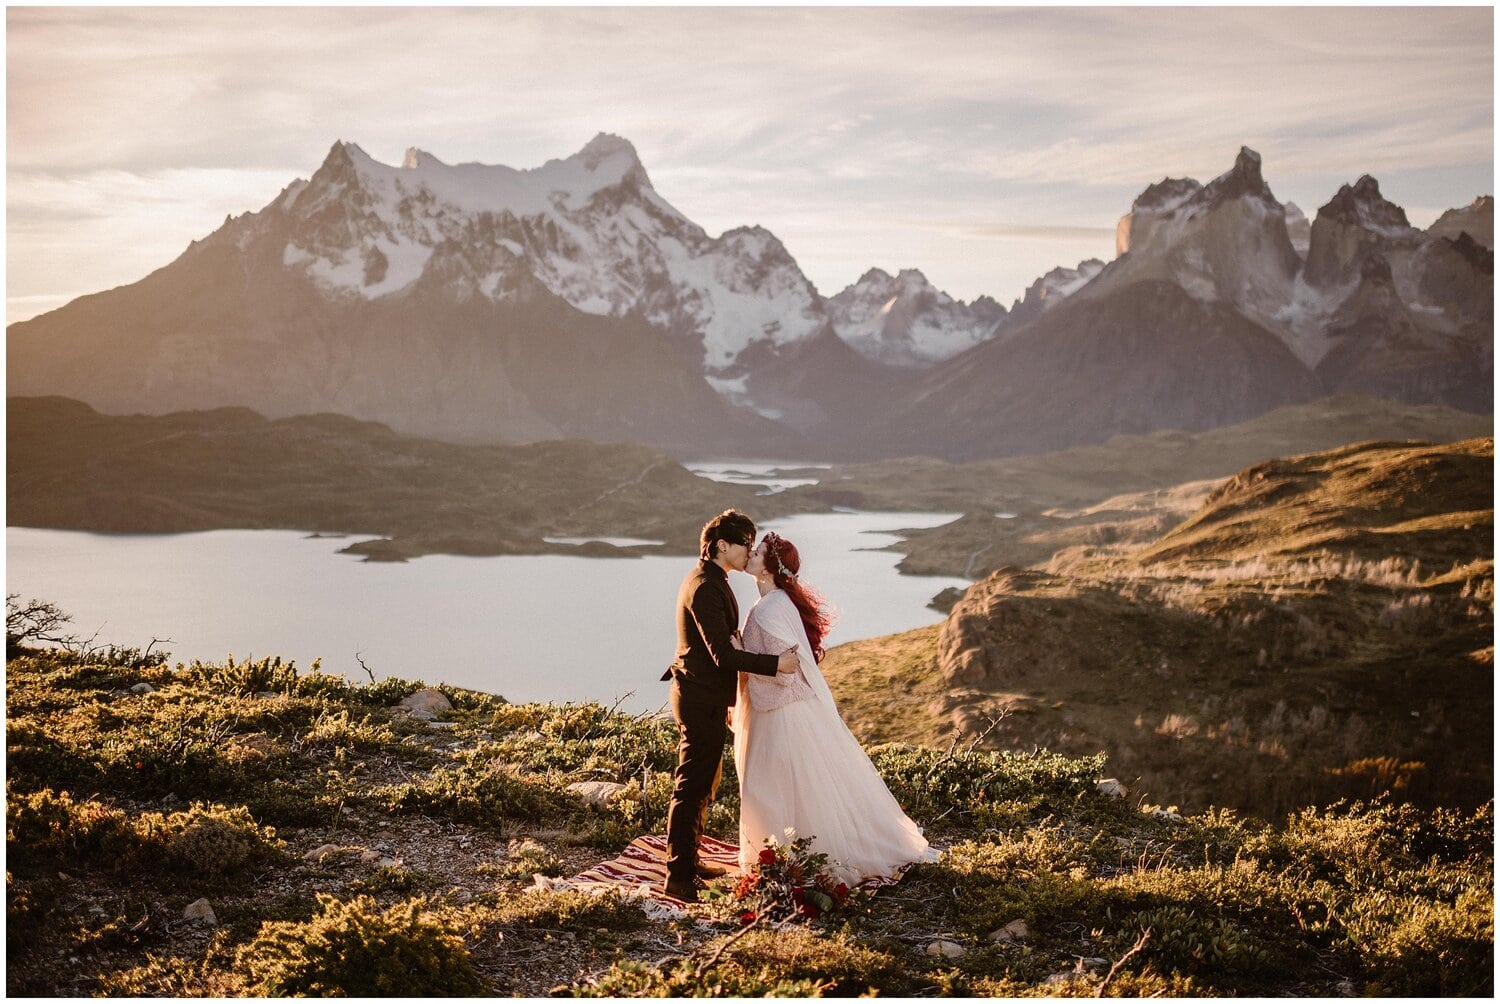 Couple kisses on their wedding day in Patagonia.